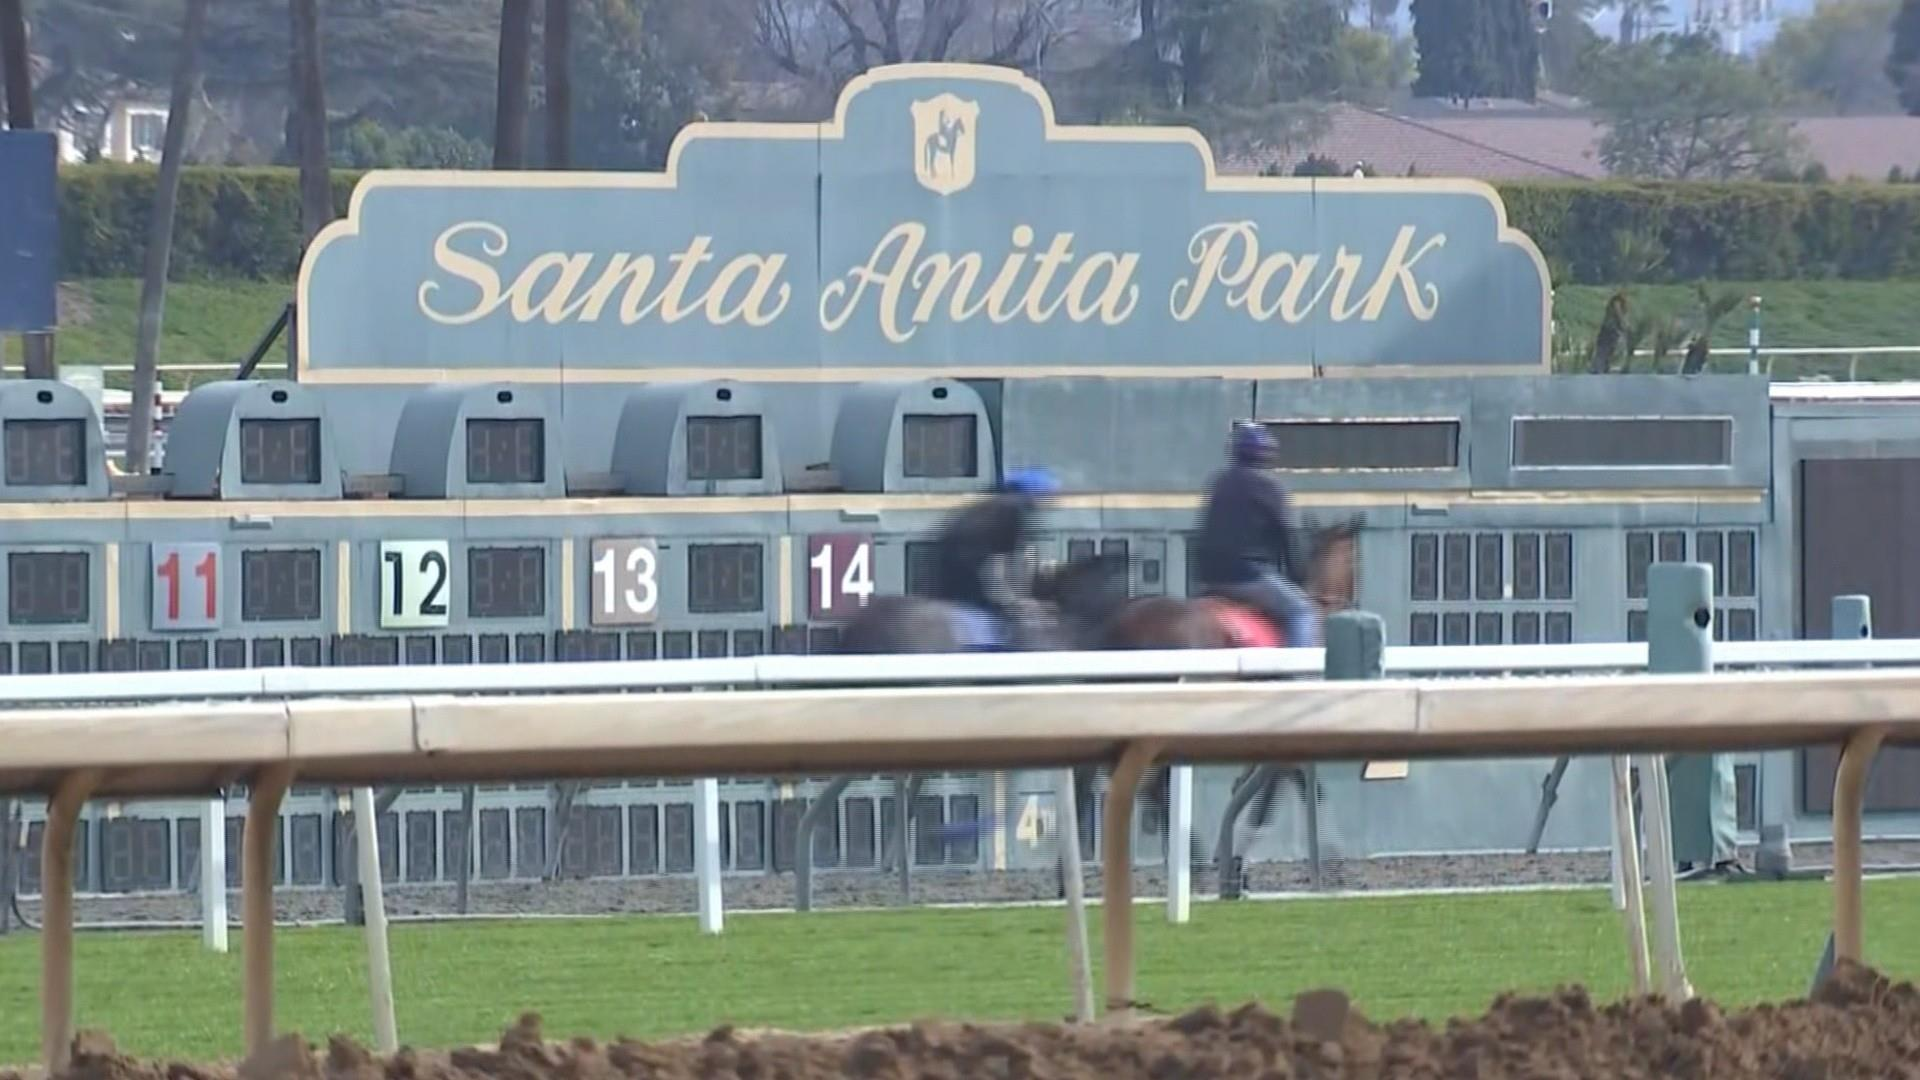 23rd horse dies at Santa Anita racetrack, two days after racing resumed